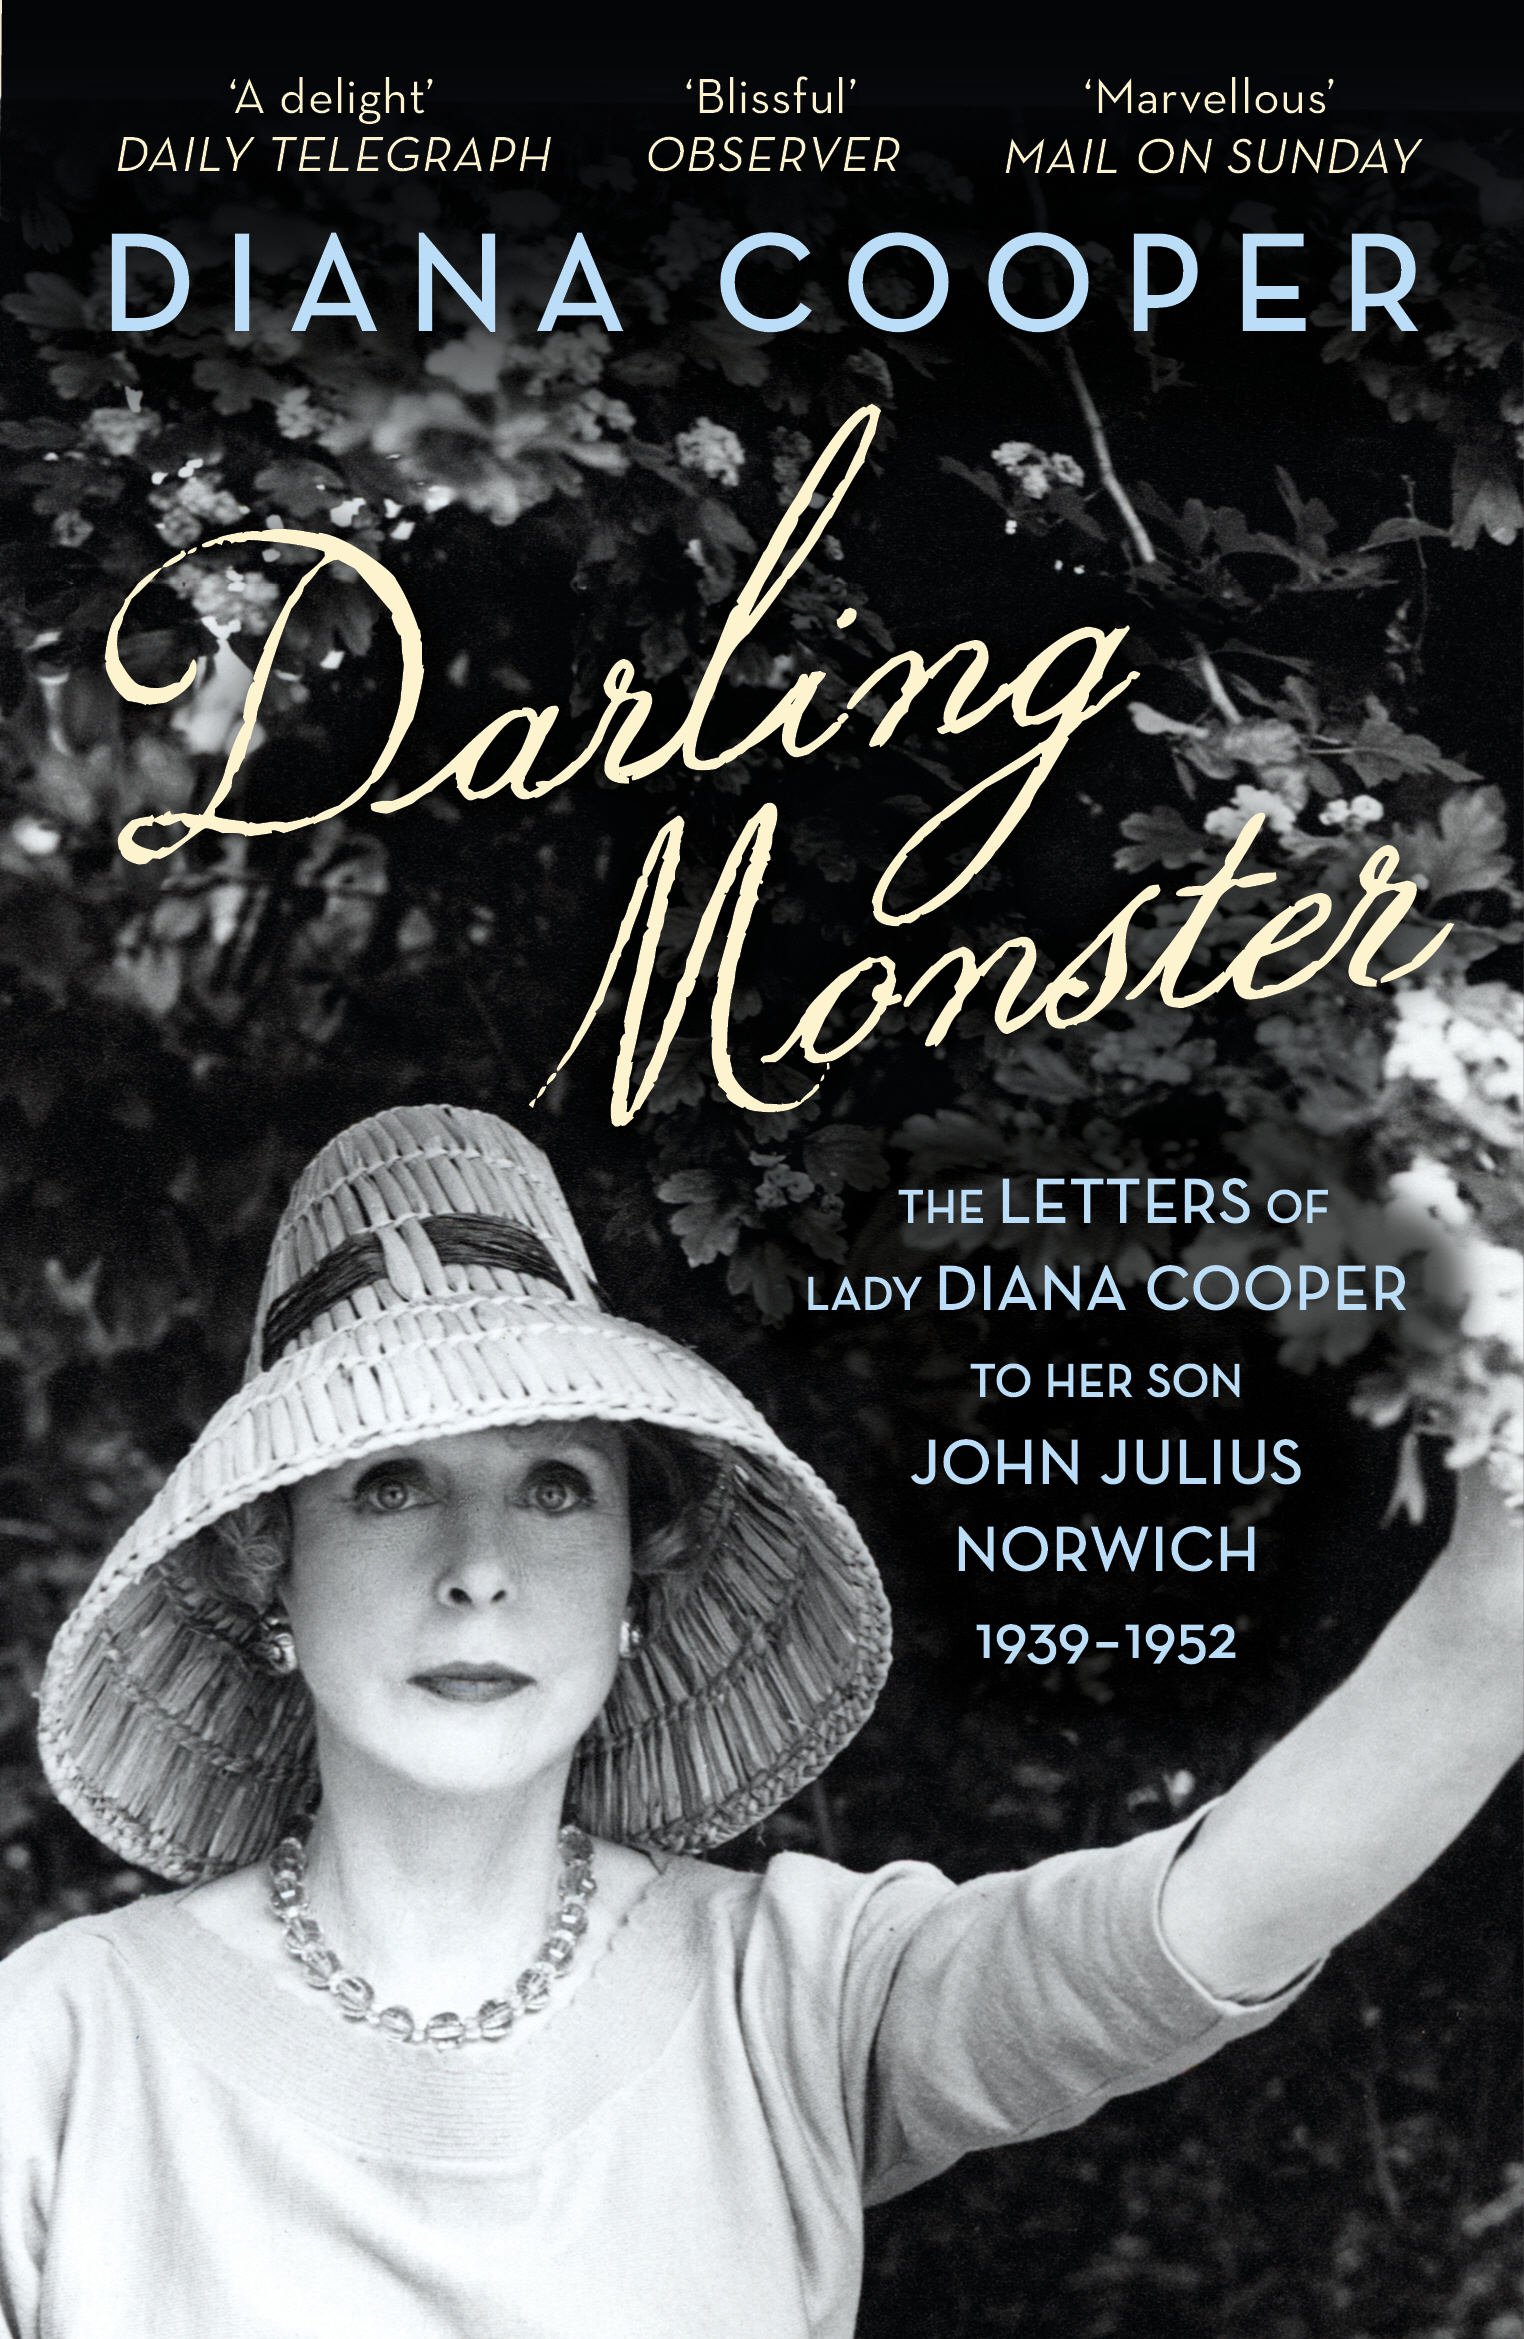 Darling Monster The Letters of Lady Diana Cooper to her Son John Julius Norwich 1939-1952